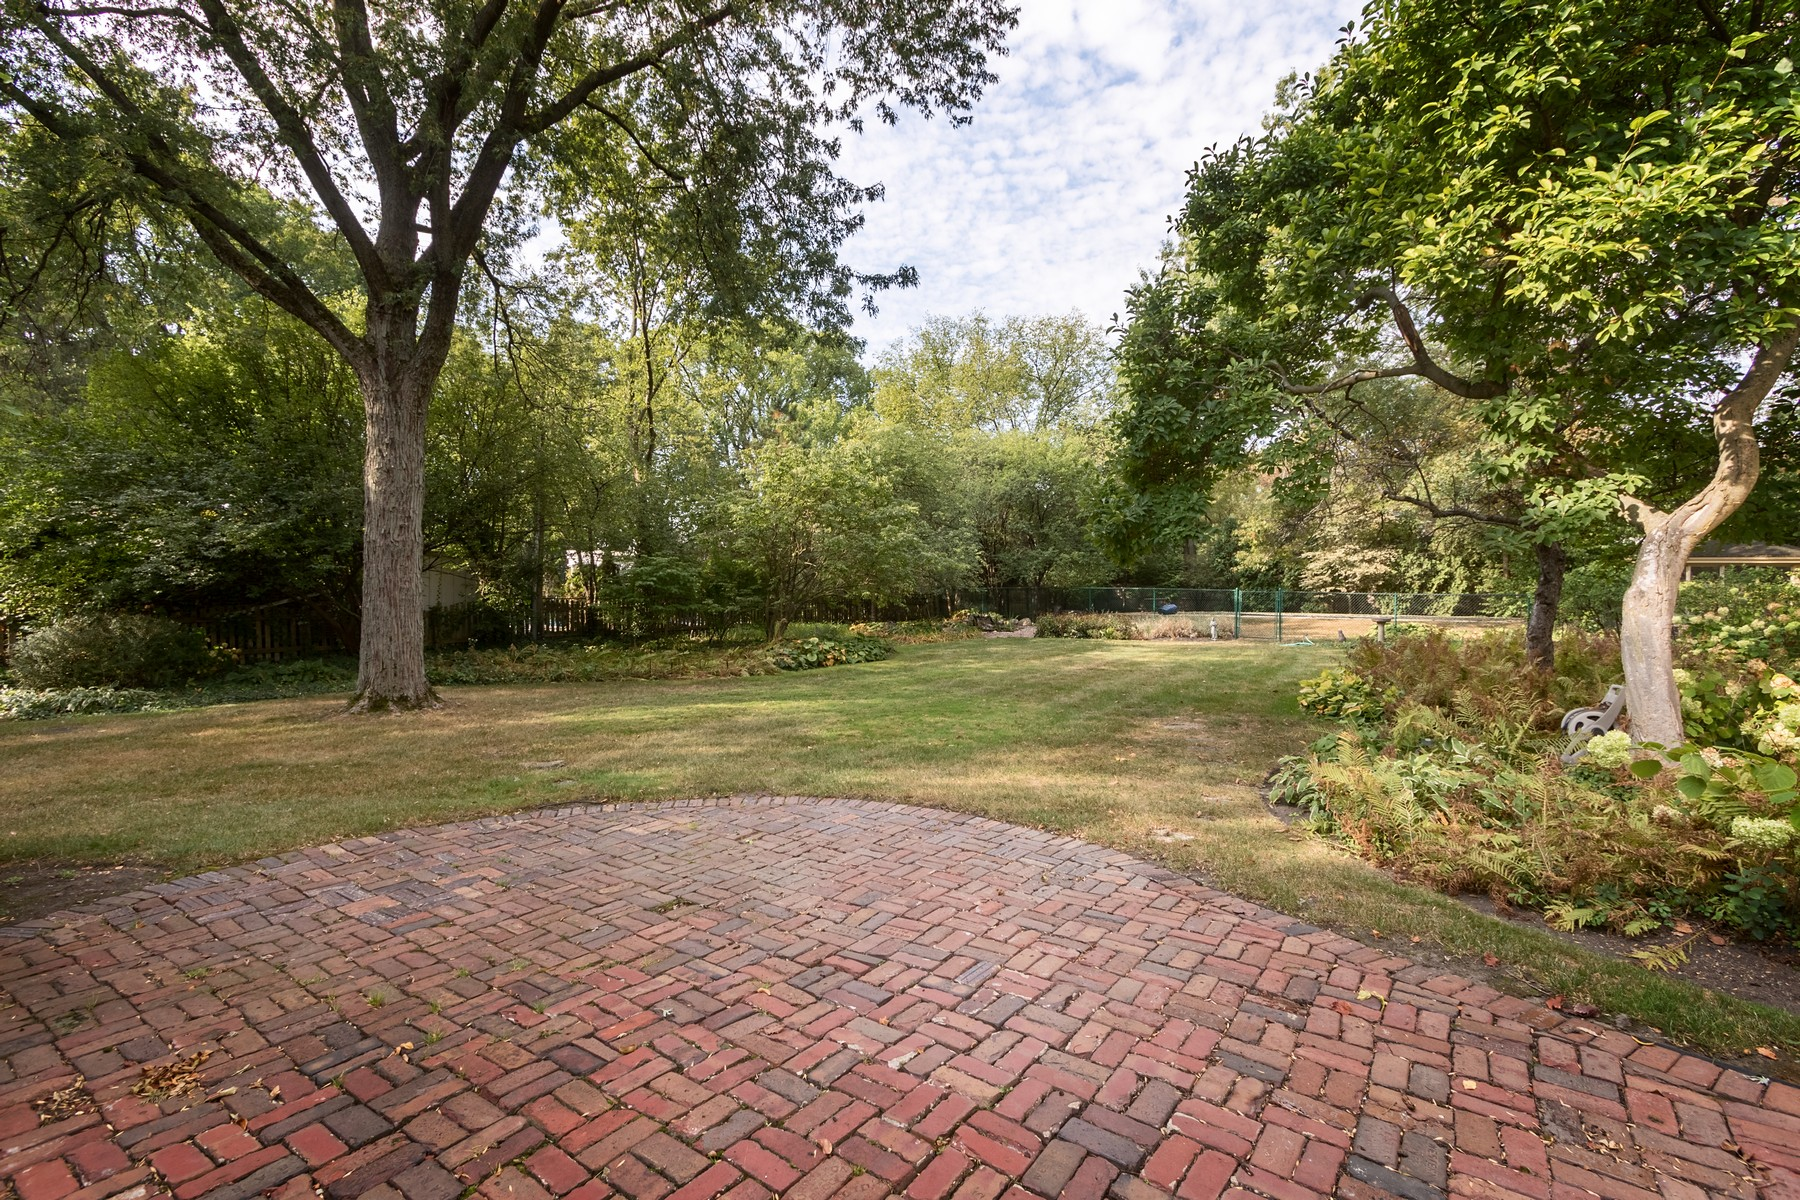 Additional photo for property listing at 720 S. Elm 720 S. Elm Hinsdale, Illinois 60521 United States